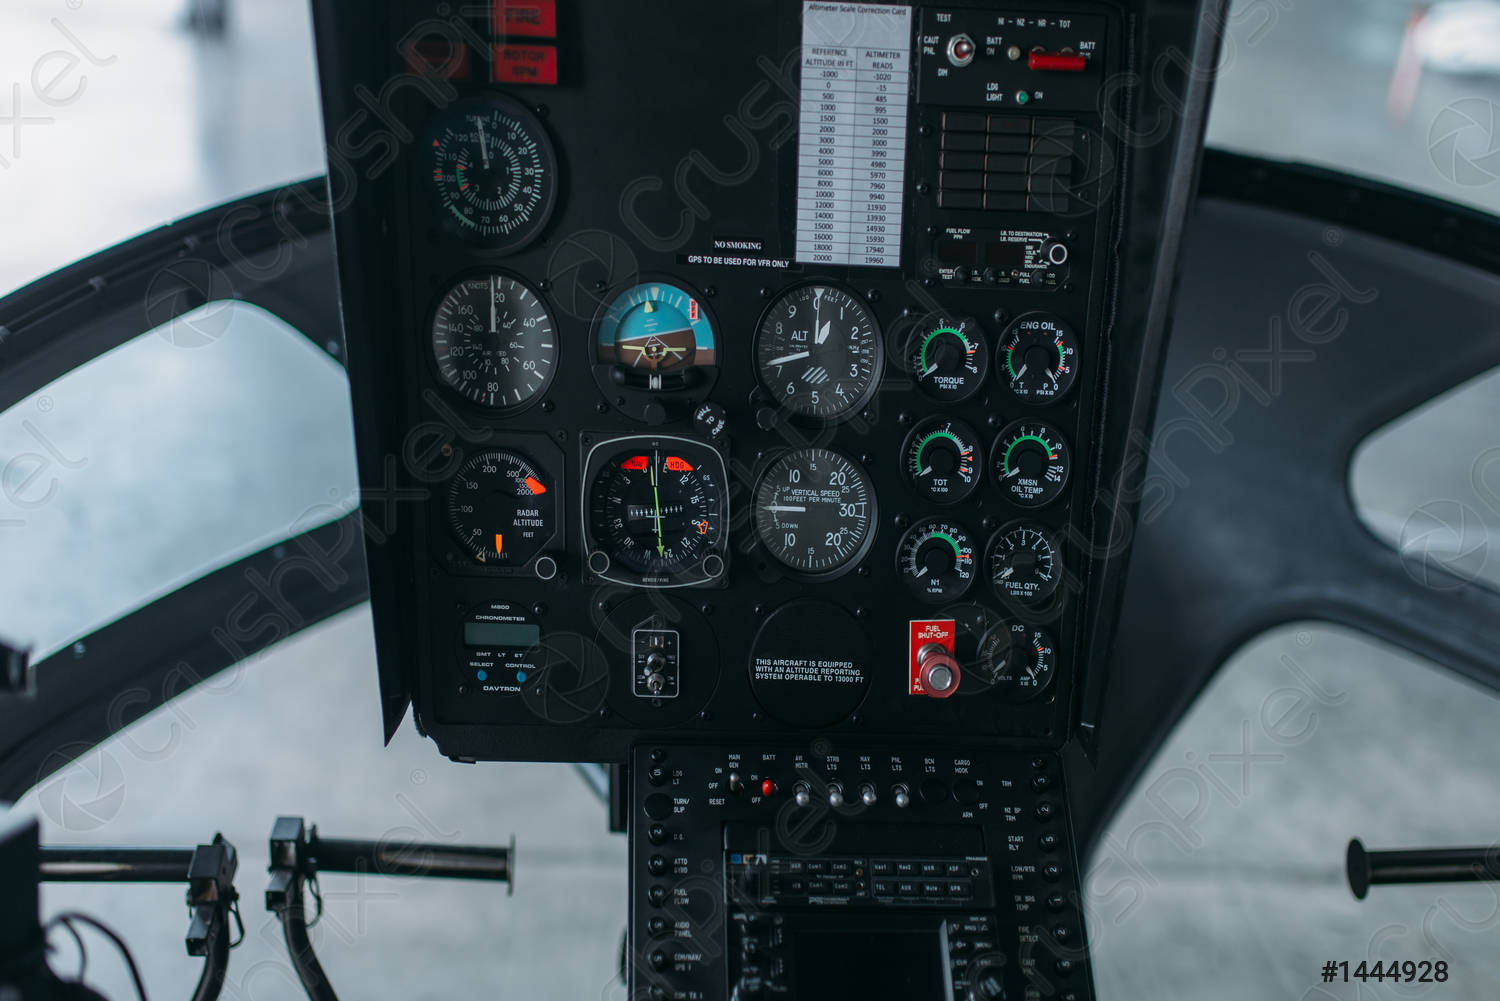 inside-helicopter-cabin-control-panel-1444928.jpg